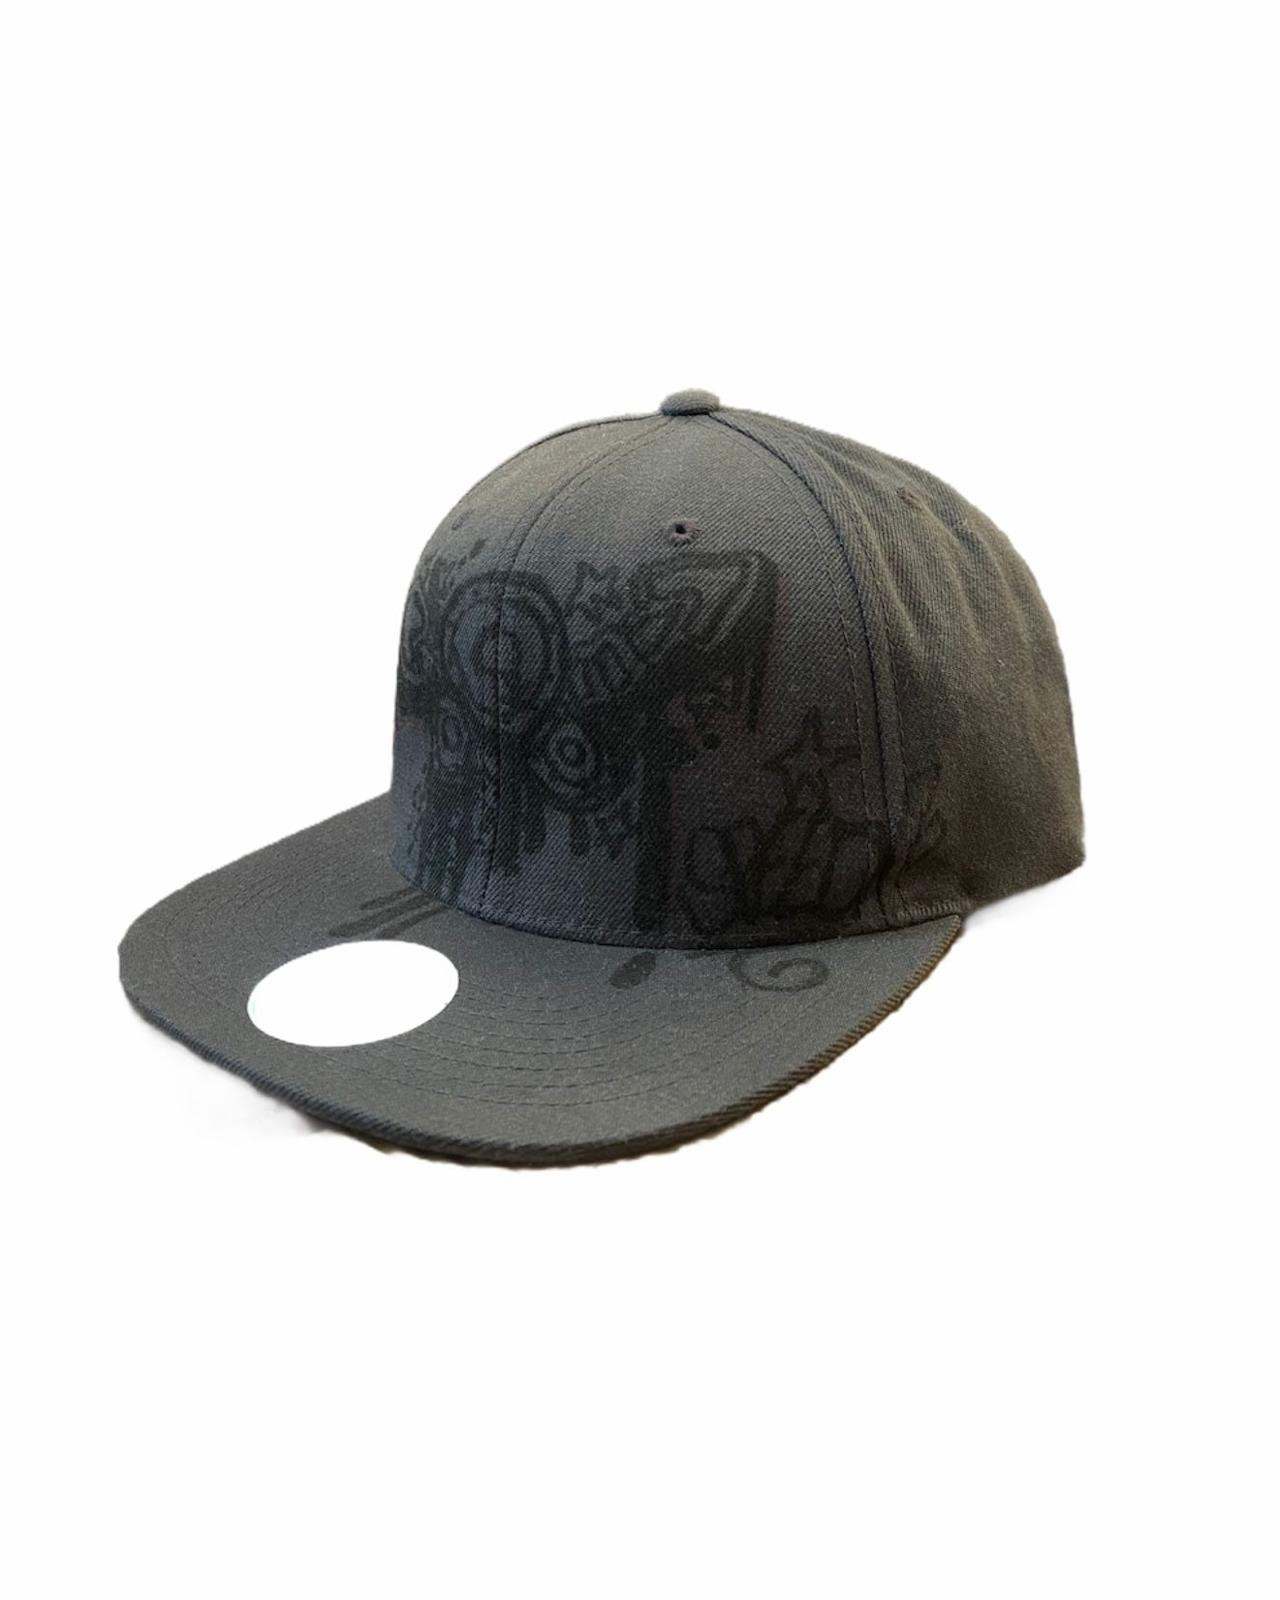 State of Wow Usa Cap